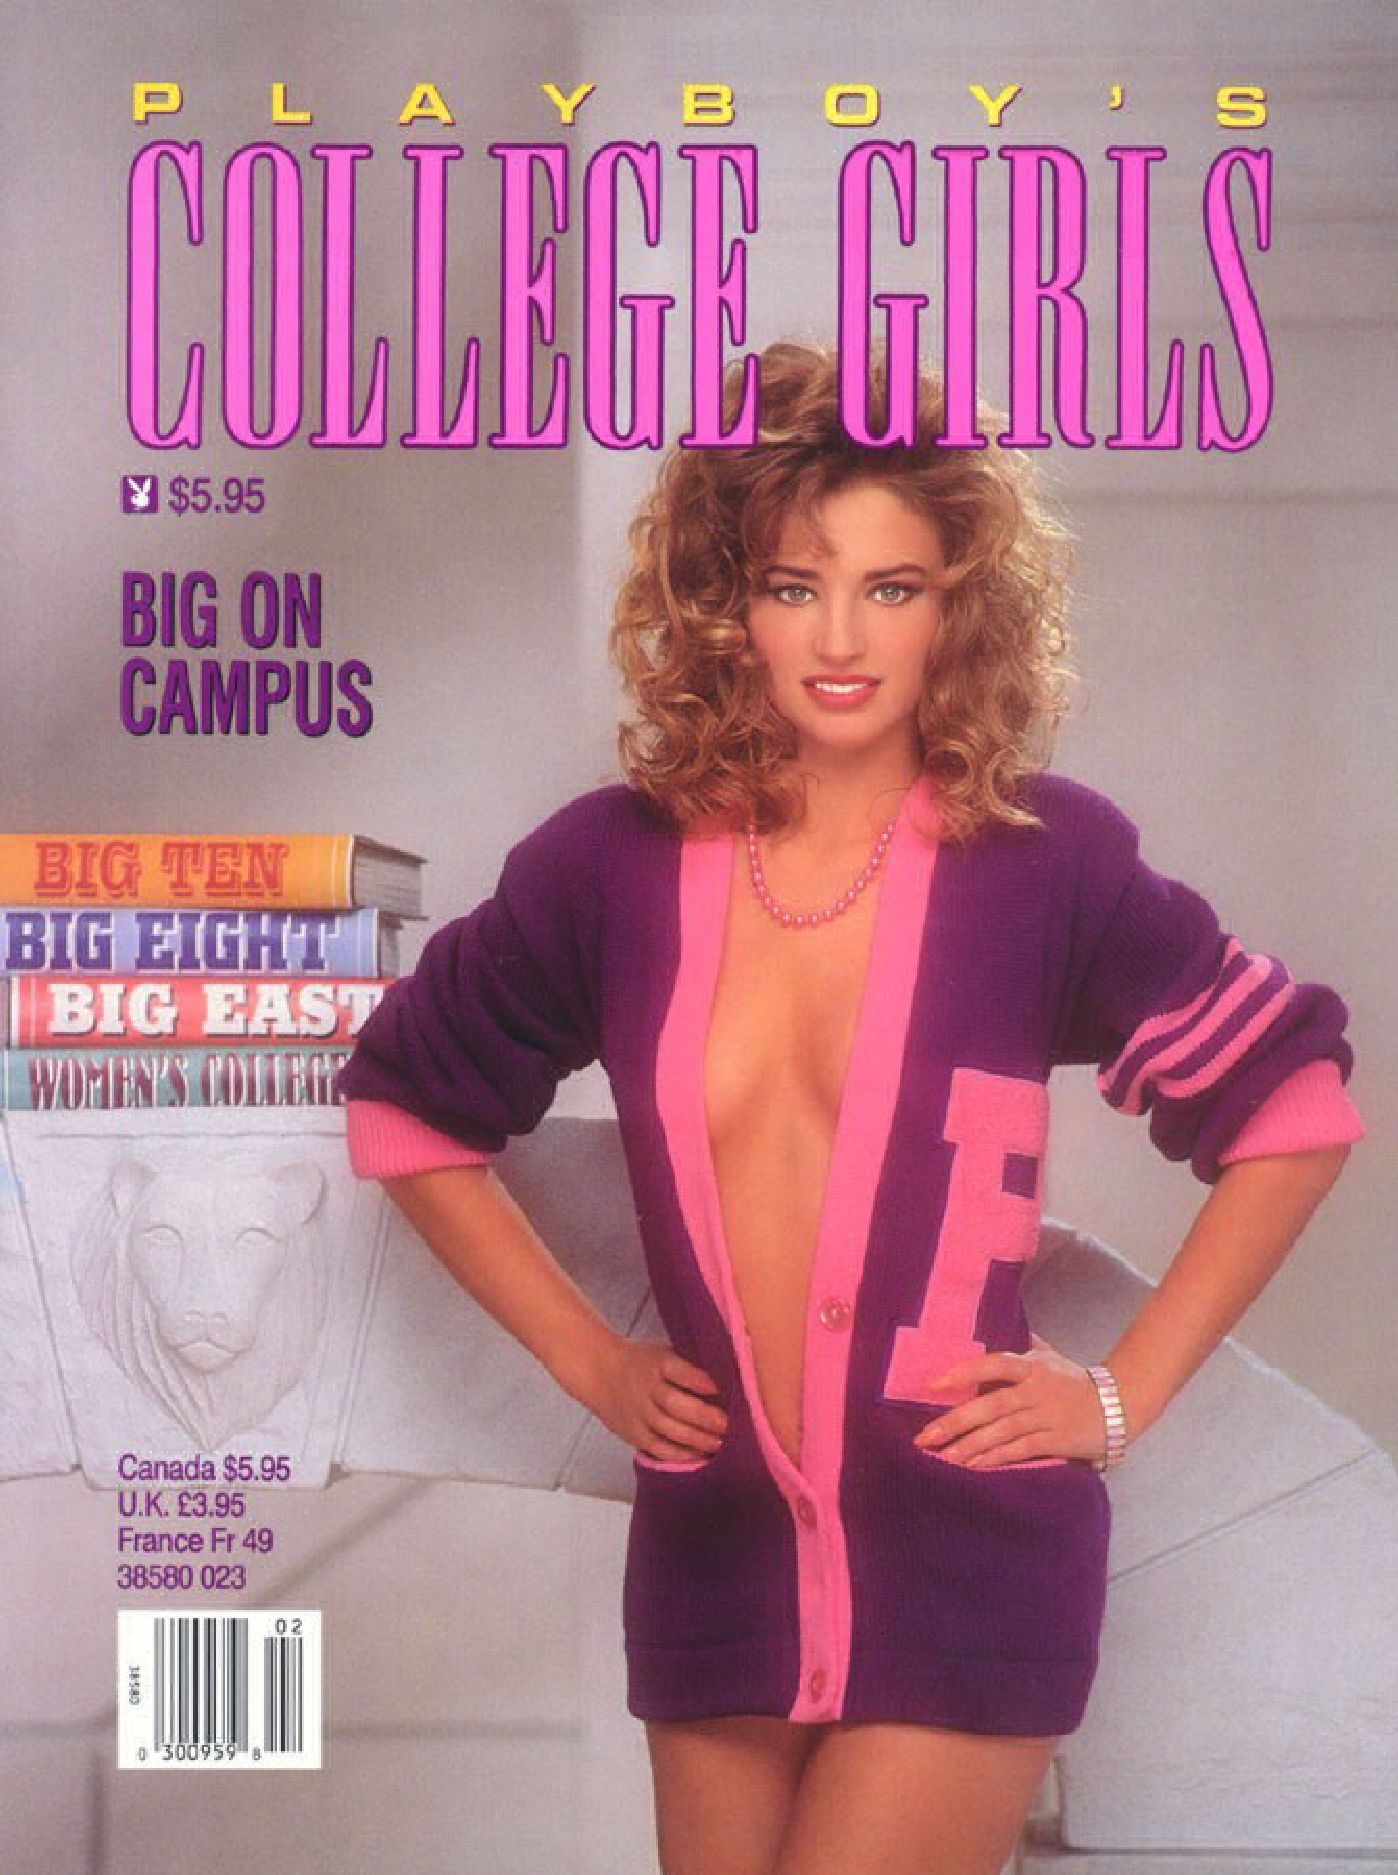 Playboys College Girls 1993 by Kenny Theis - Issuu